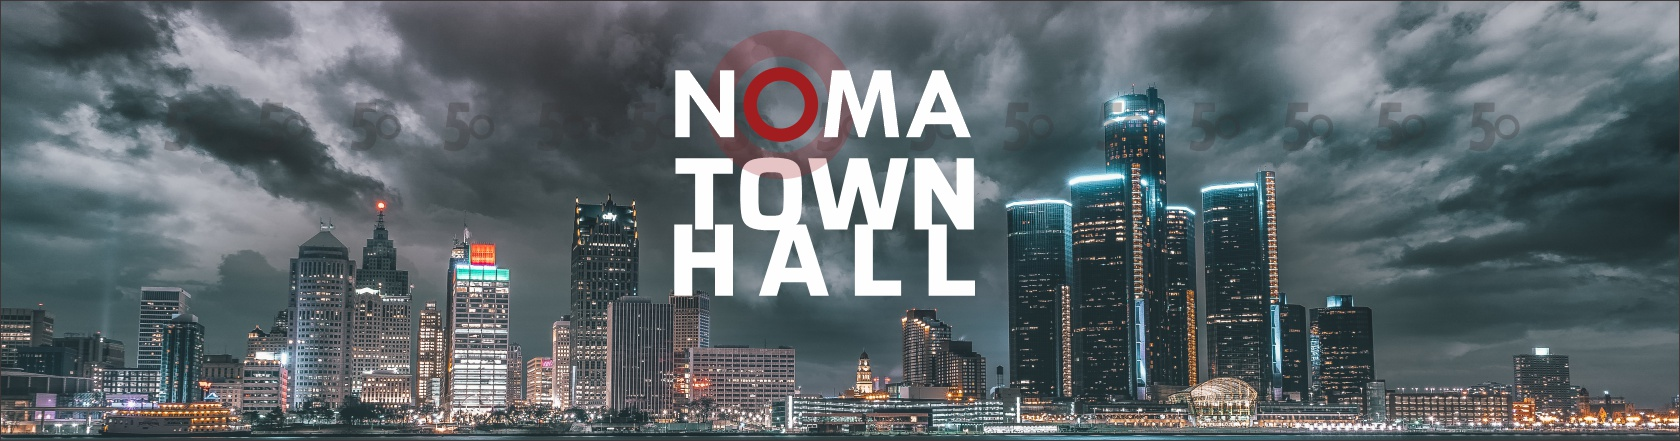 NOMA Town Hall Banner